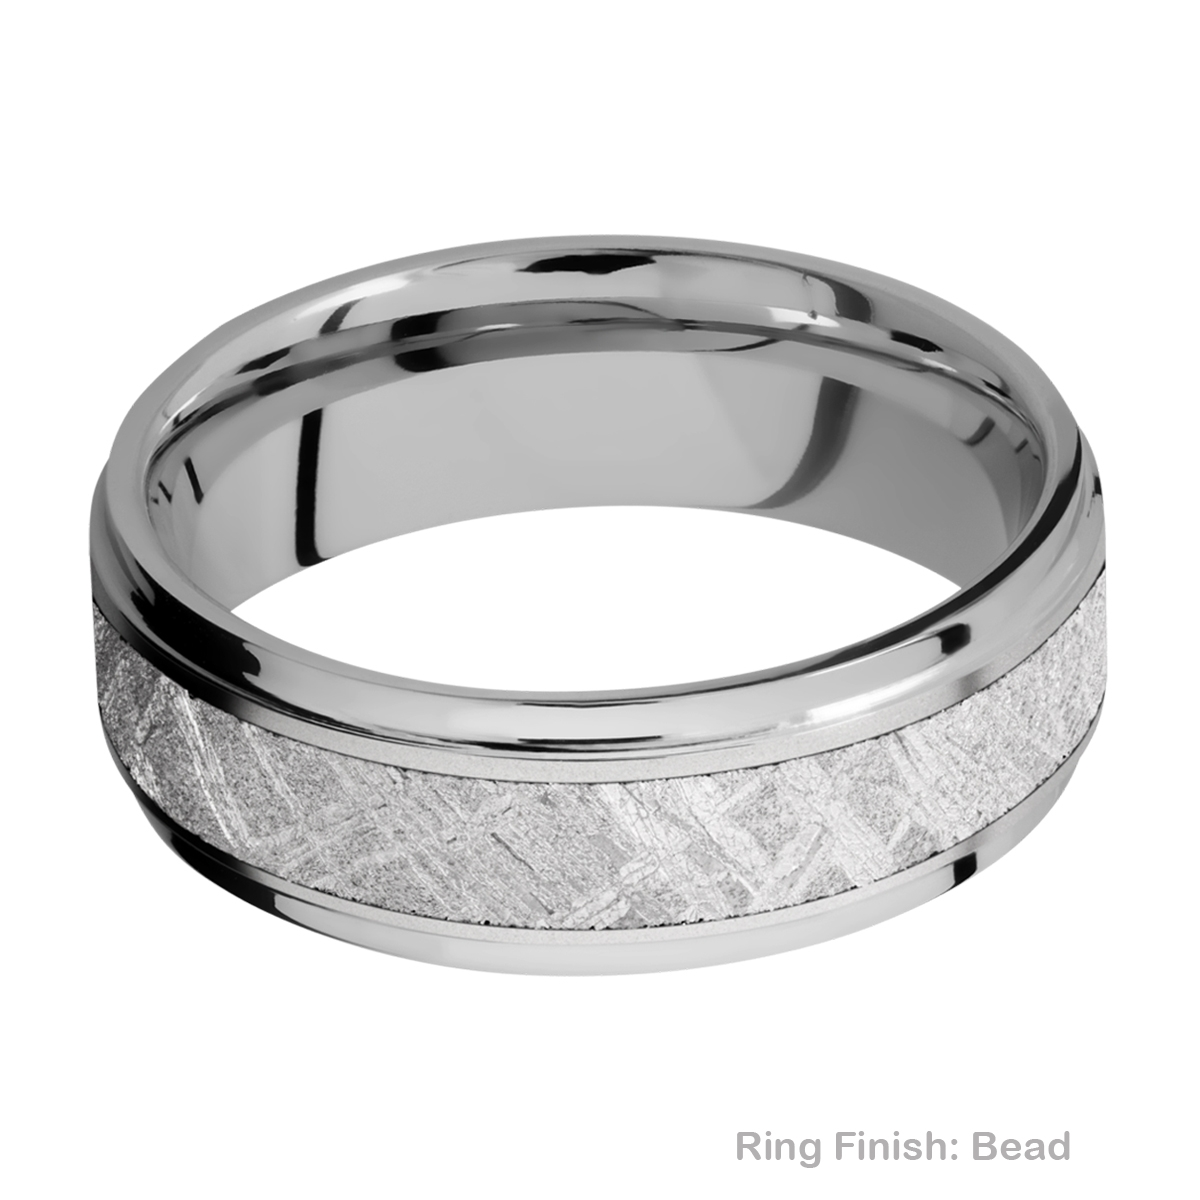 Lashbrook 7FGE14/METEORITE Titanium Wedding Ring or Band Alternative View 2